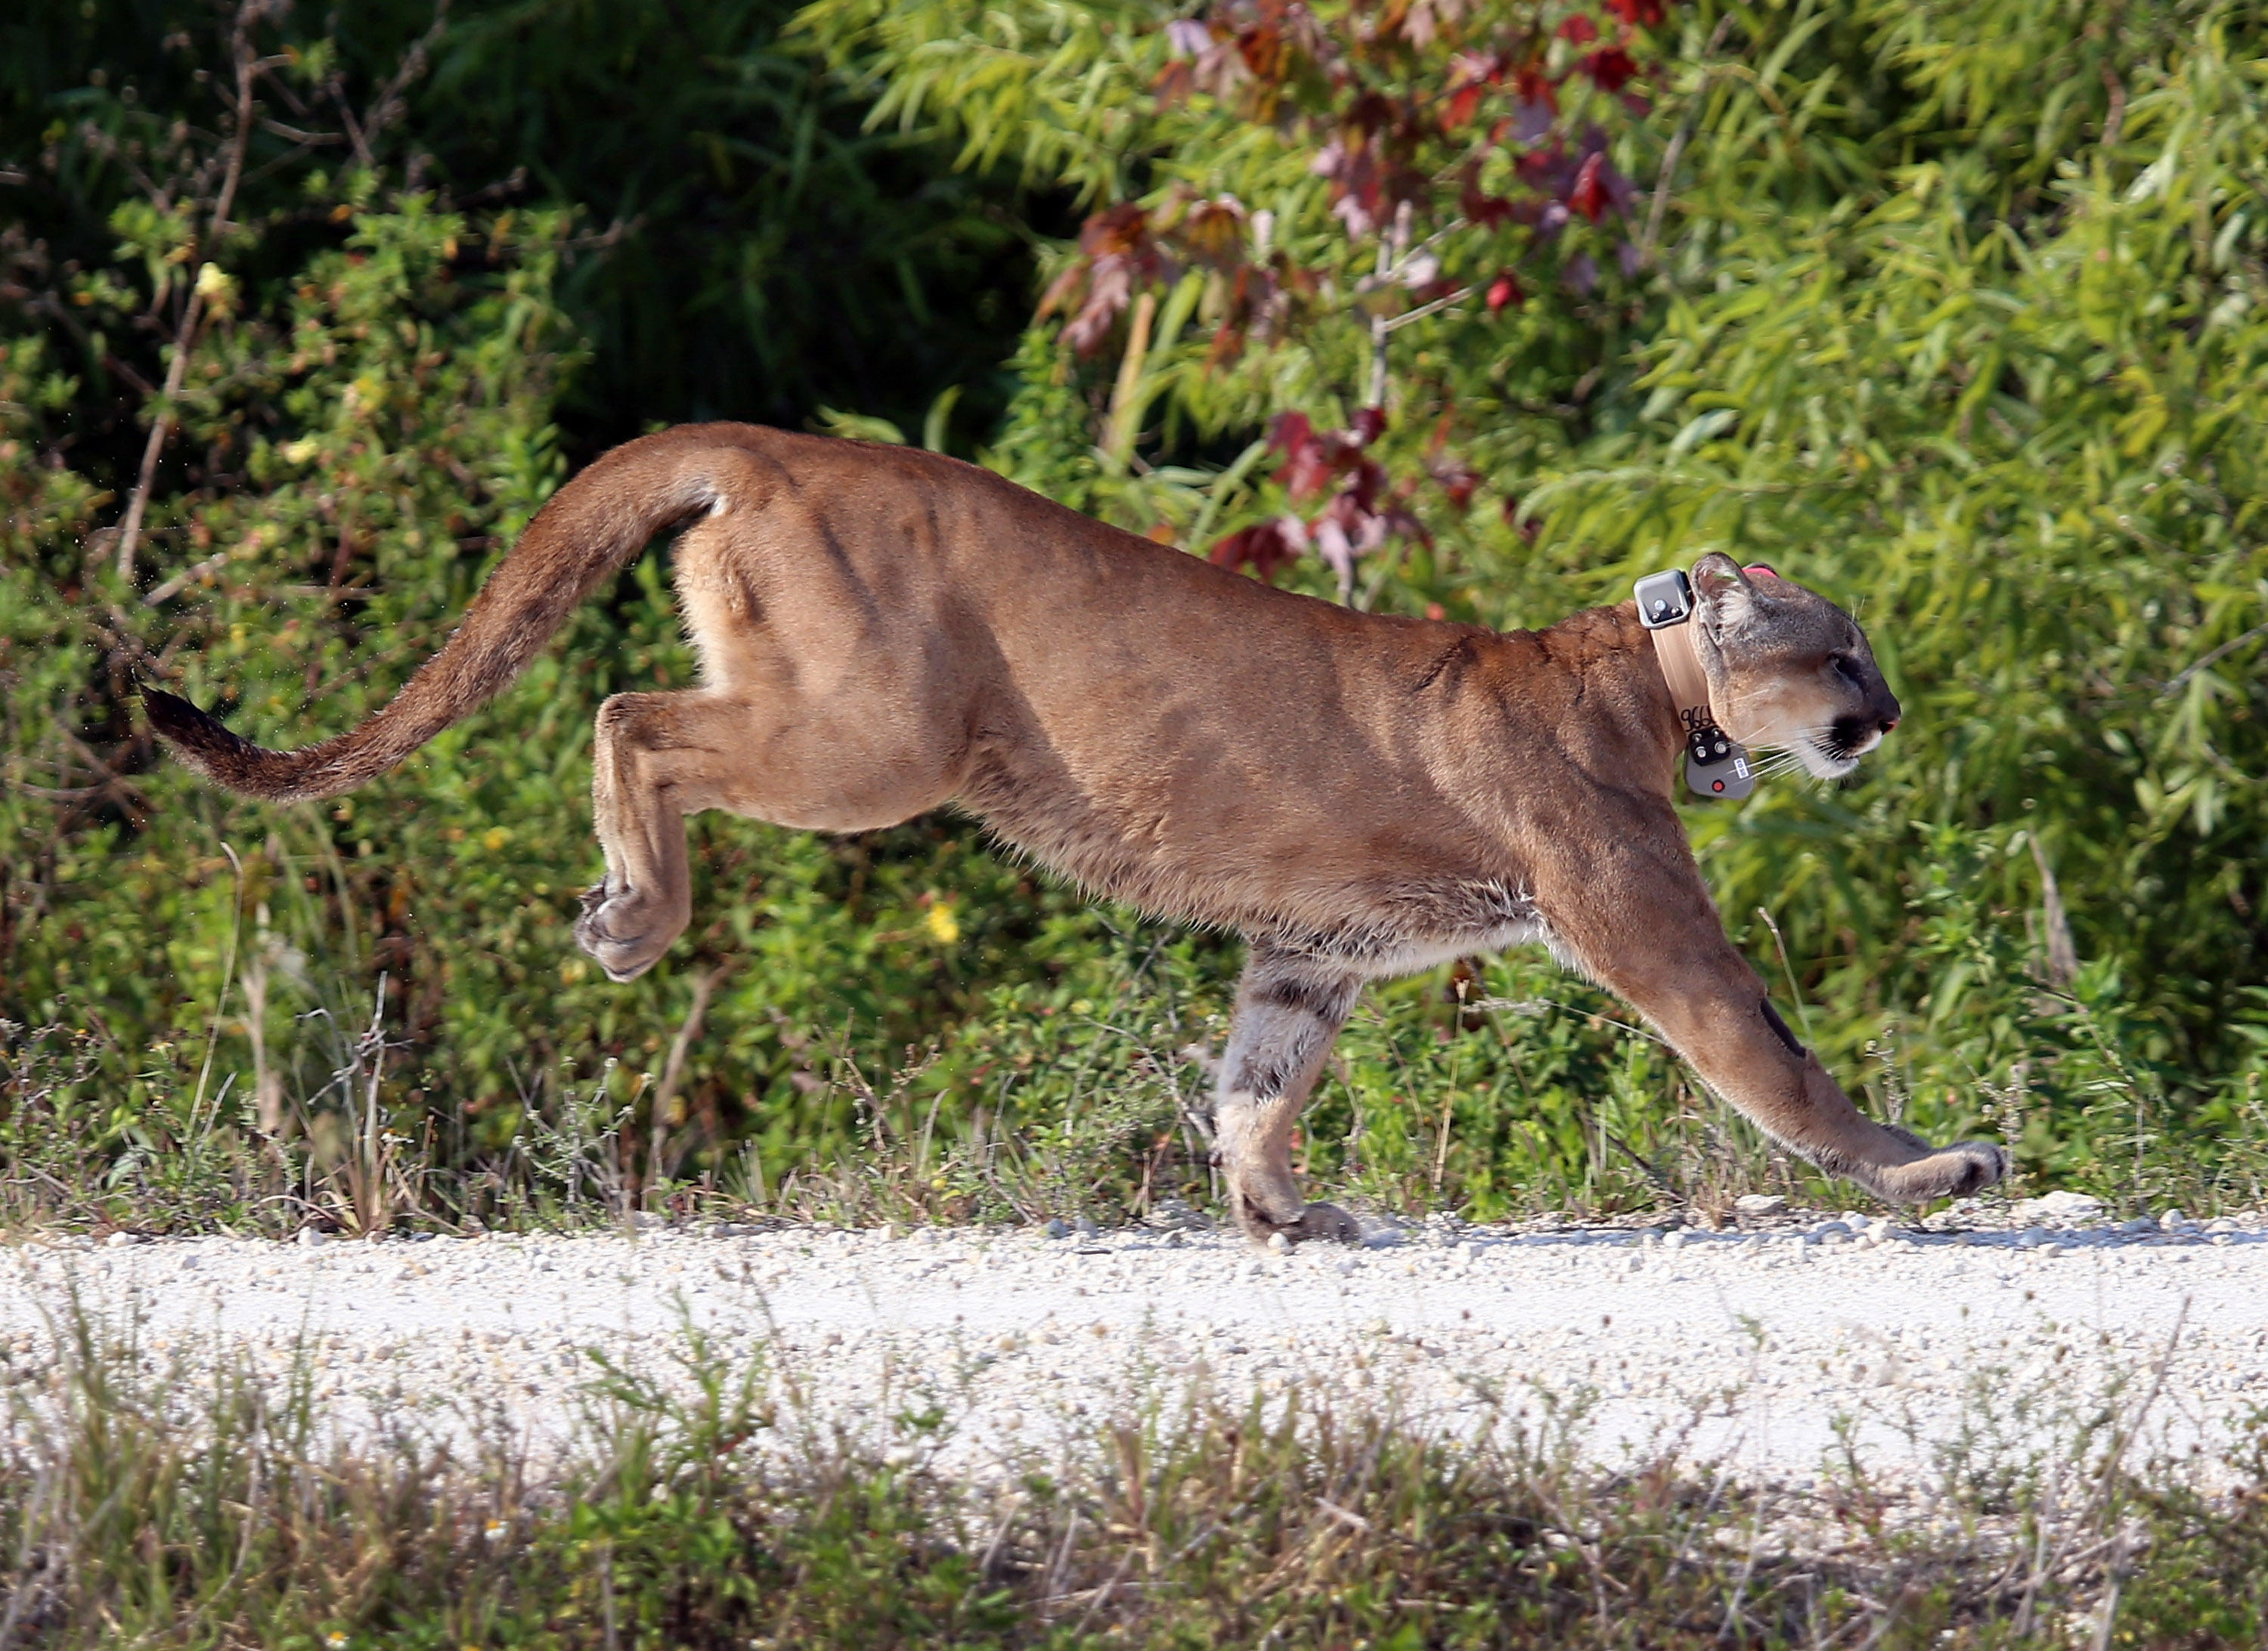 florida panther View the latest florida panthers news, scores, schedule, stats, roster, standings, players, fantasy leaders, rumors, videos, photos, injuries, transactions and more.